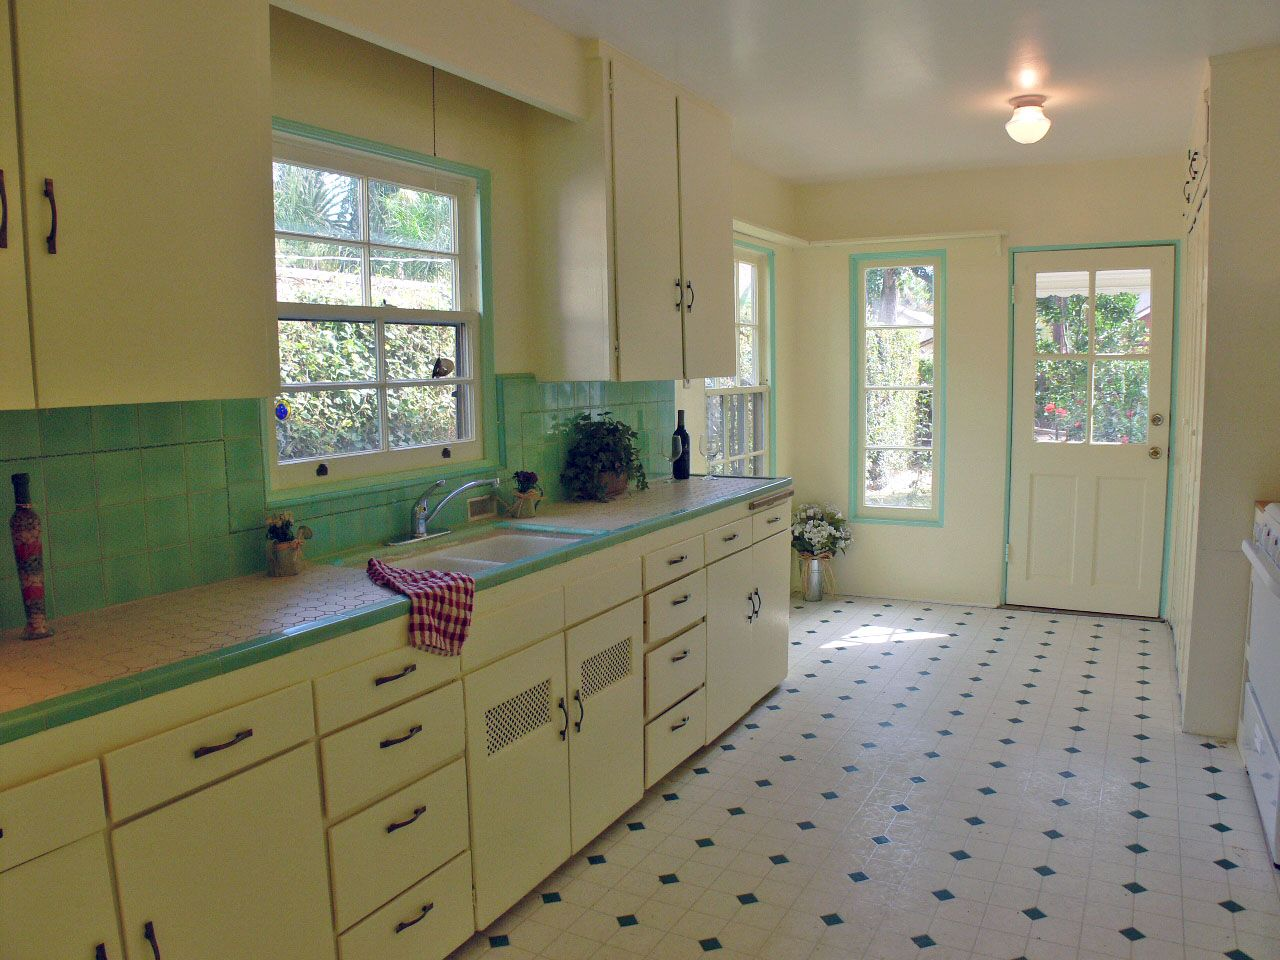 Tiled Kitchens Darling Kitchen With Original Honeycomb Tile Countertops Kitschy